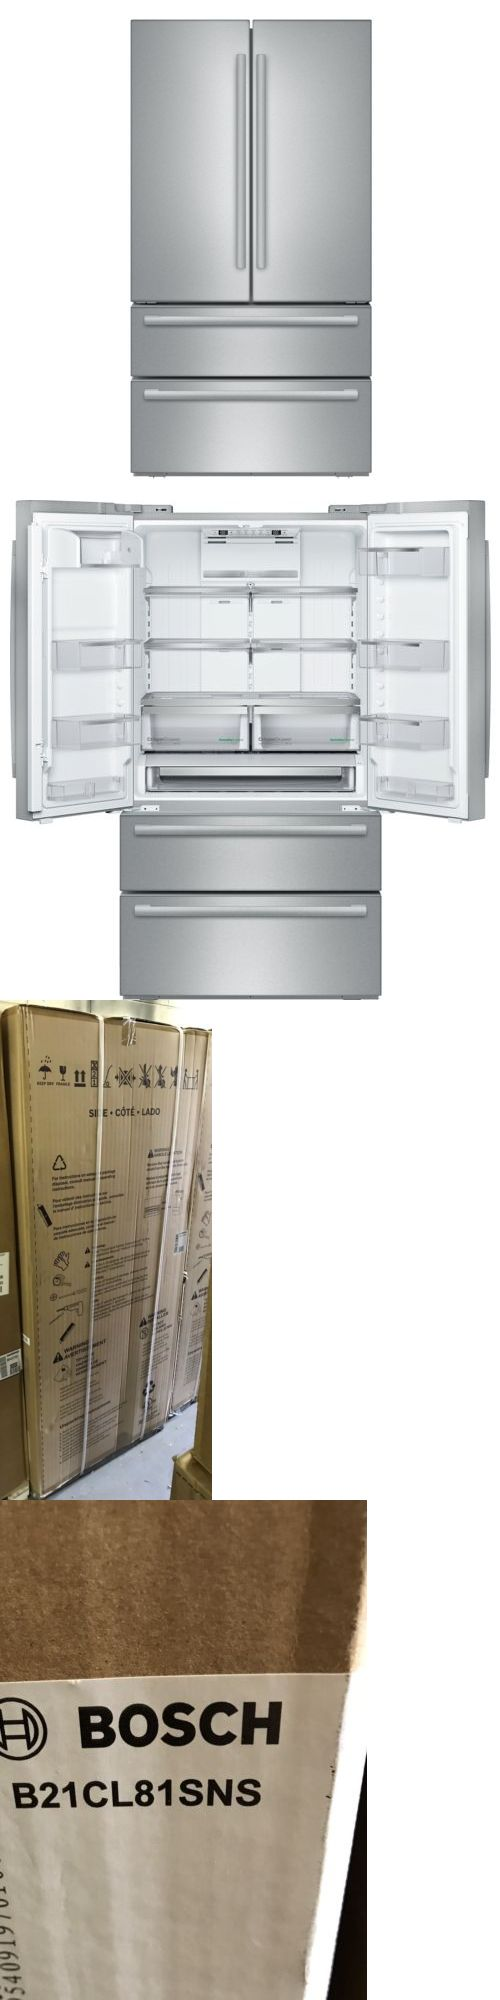 Refrigerators 20713: Bosch 36 Stainless Steel French Door Counter-Depth Refrigerator B21cl81sns -> BUY IT NOW ONLY: $1999 on eBay!